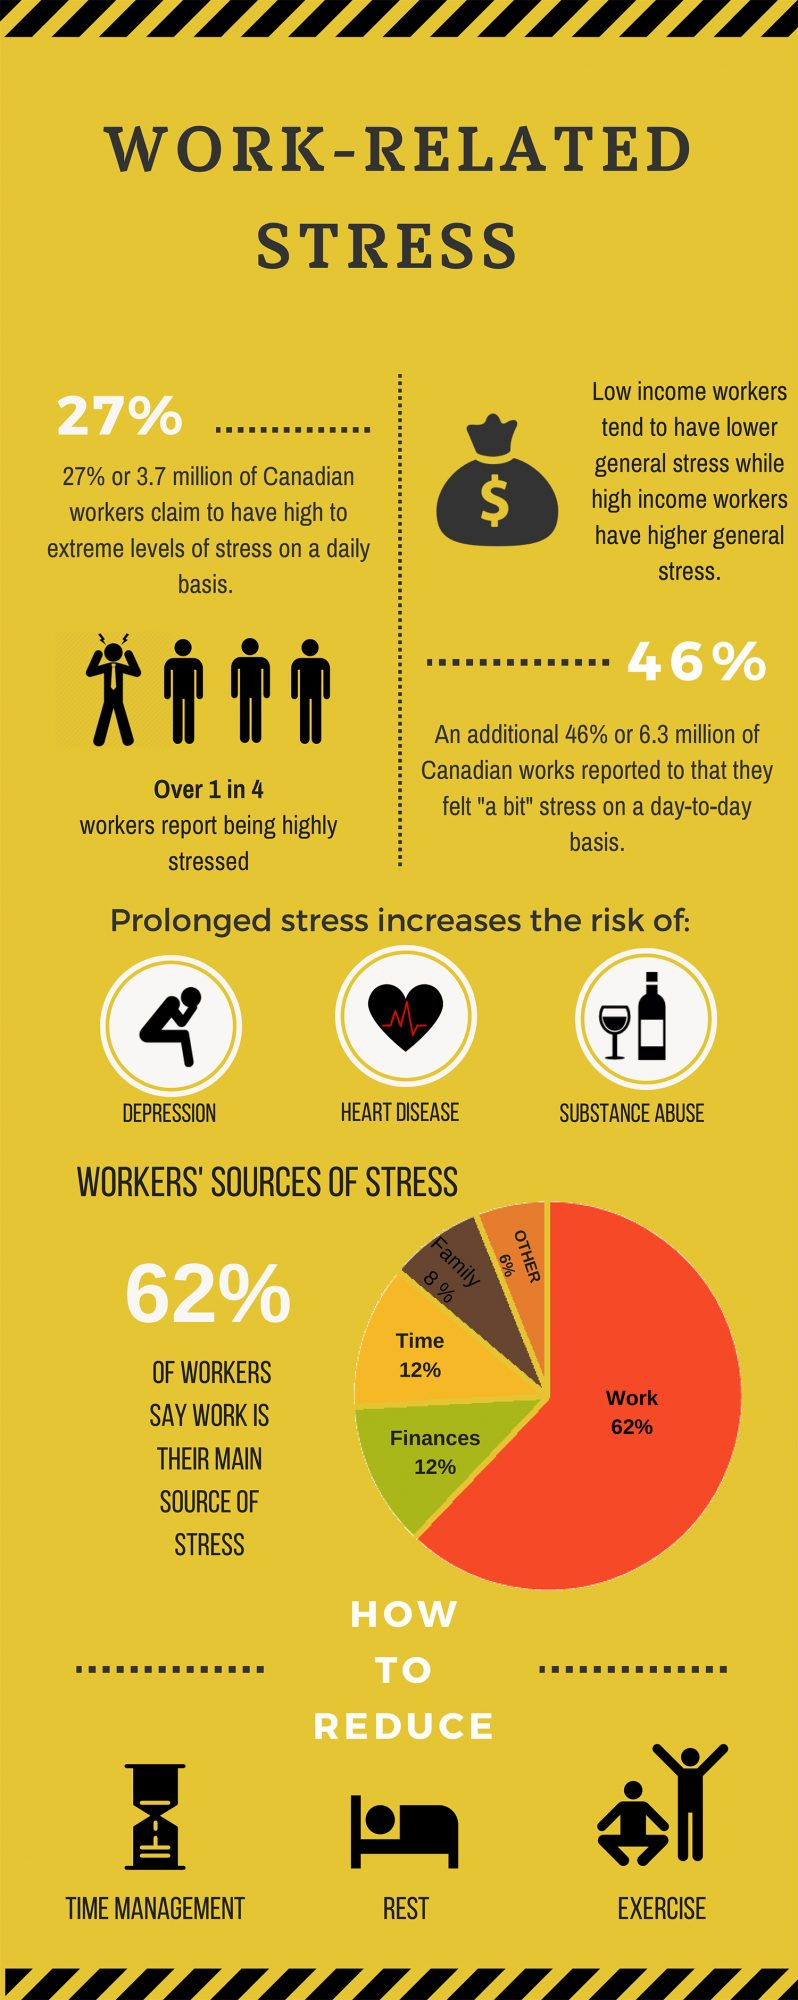 The Work Related Stress Infographic